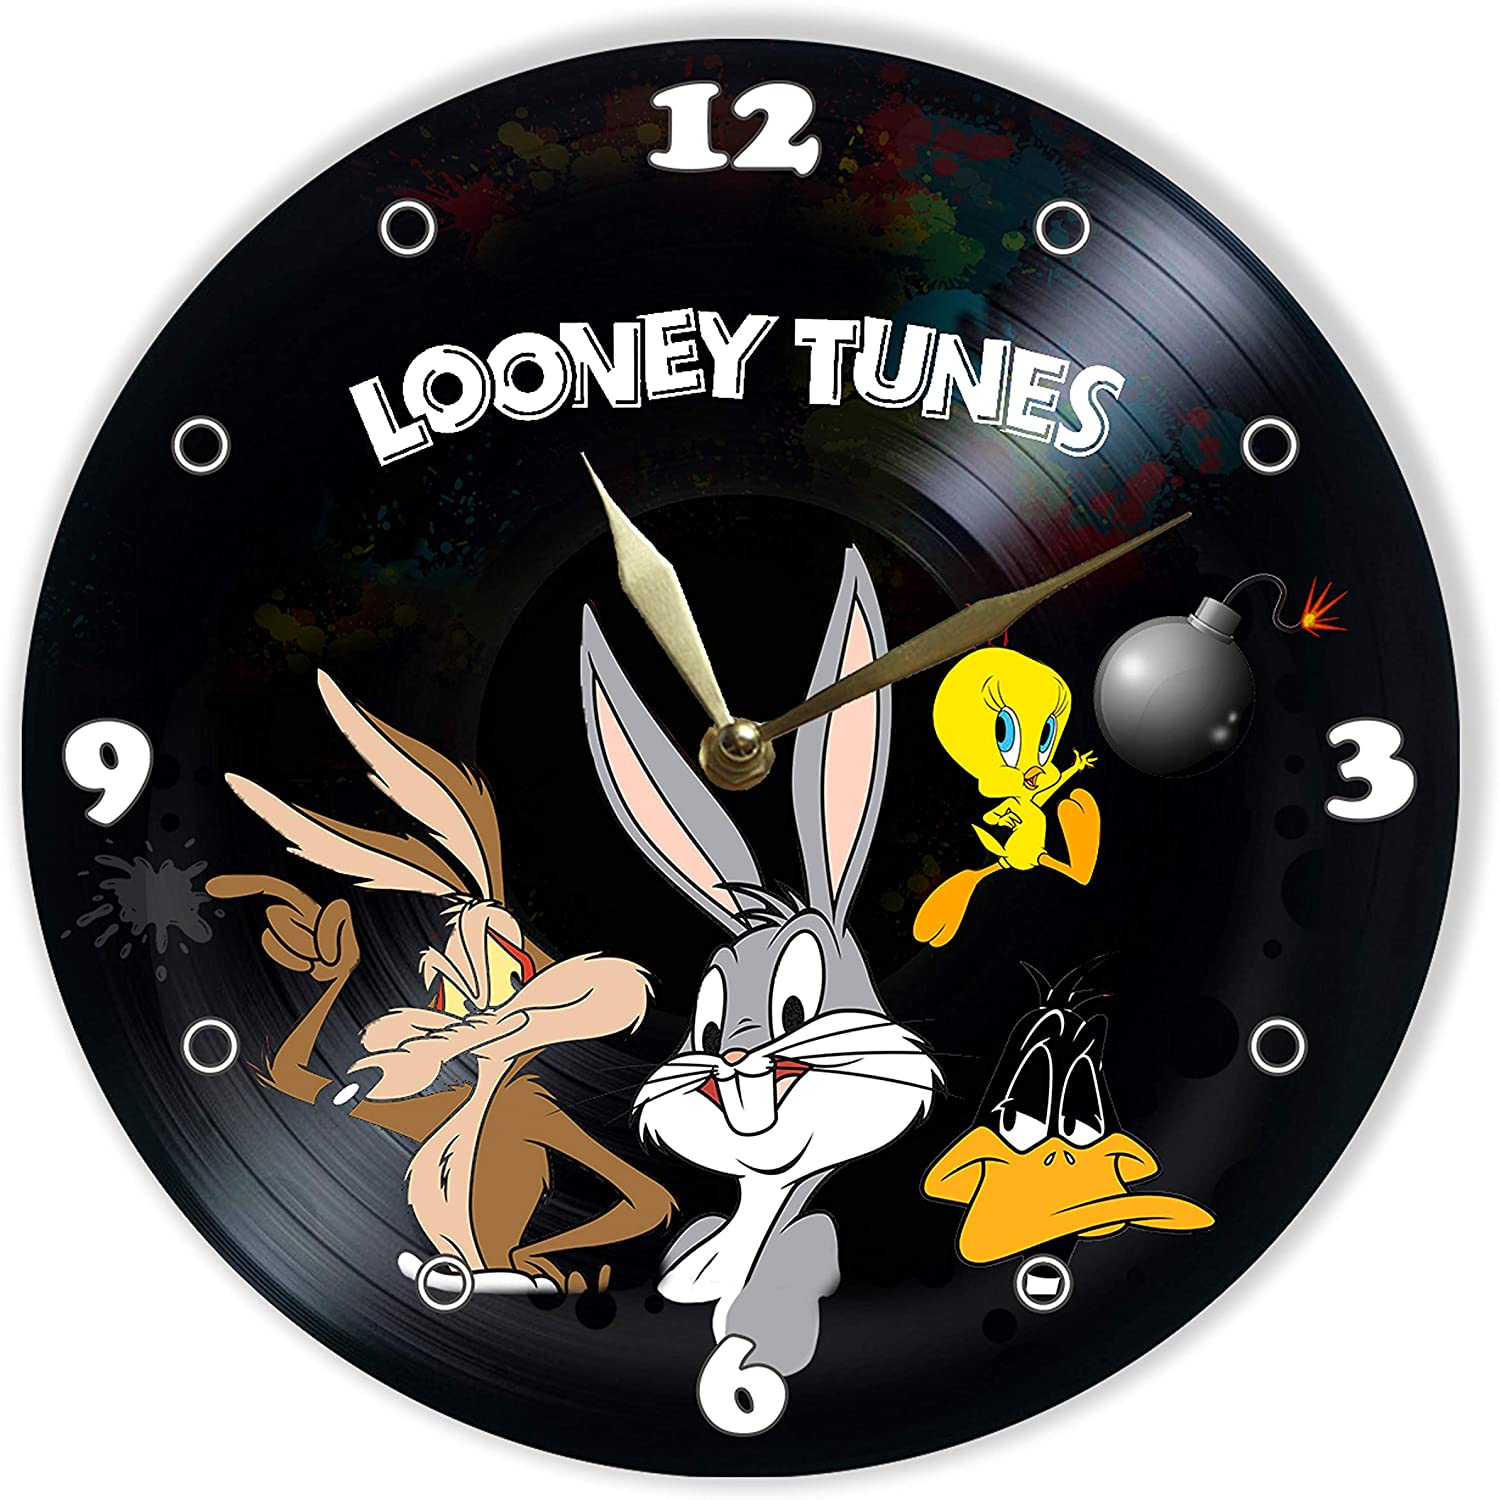 """Leooolukkin Looney Tunes Vinyl Clock 12"""", Wall Clock Painted Looney Tunes, Original Gifts for Cartoons Lovers, The Best Gift for Kids, Unique Wall Art Home Decor"""